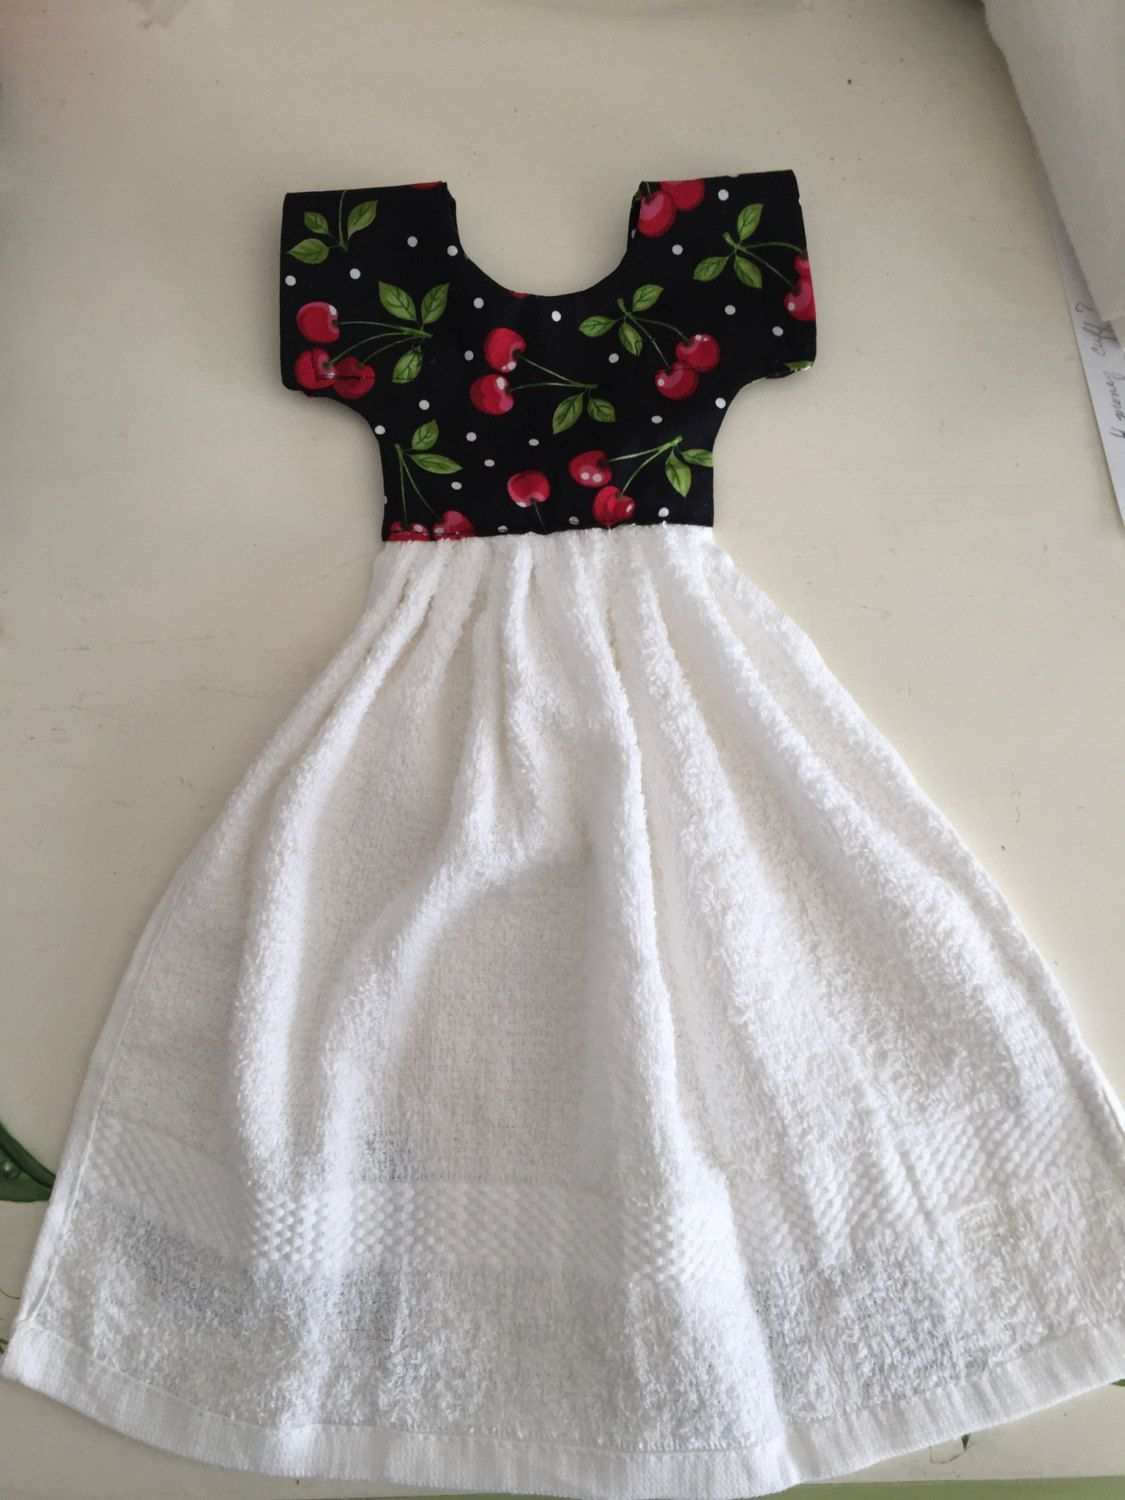 Kitchen towel, looks like a dress which hangs from a handle of oven ...